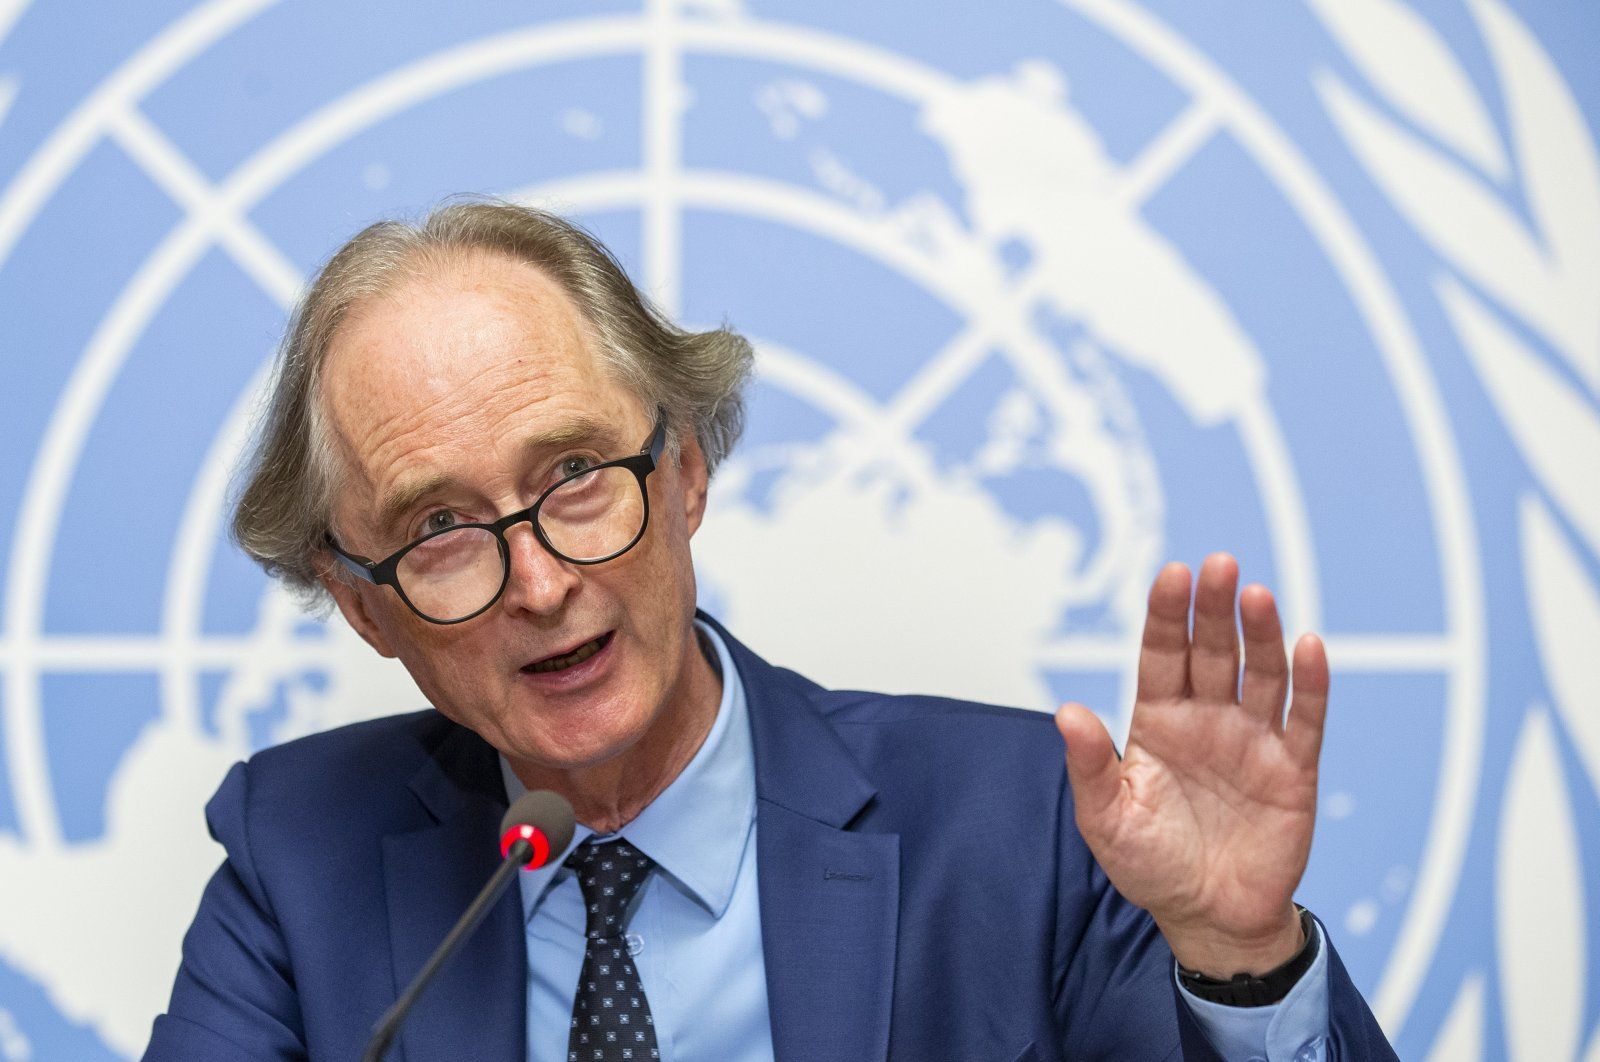 Geir O. Pedersen, U.N. special envoy for Syria, speaks during a press conference at the European headquarters of the United Nations in Geneva, Switzerland, Aug. 21, 2020. (AP Photo)